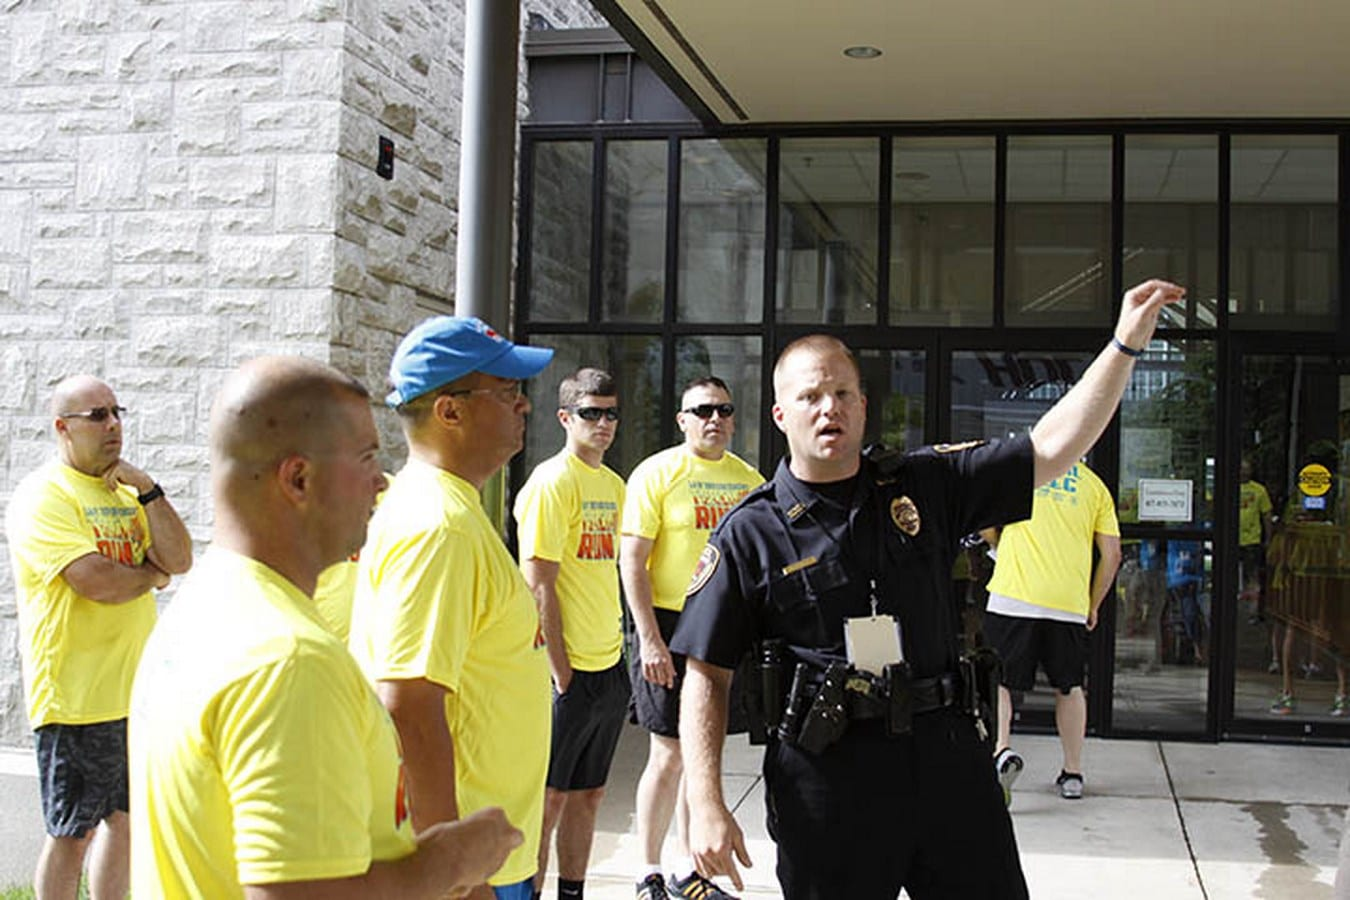 Sargent Mark Priebe in uniform gives direction to his other law enforcement officers before a Torch Run